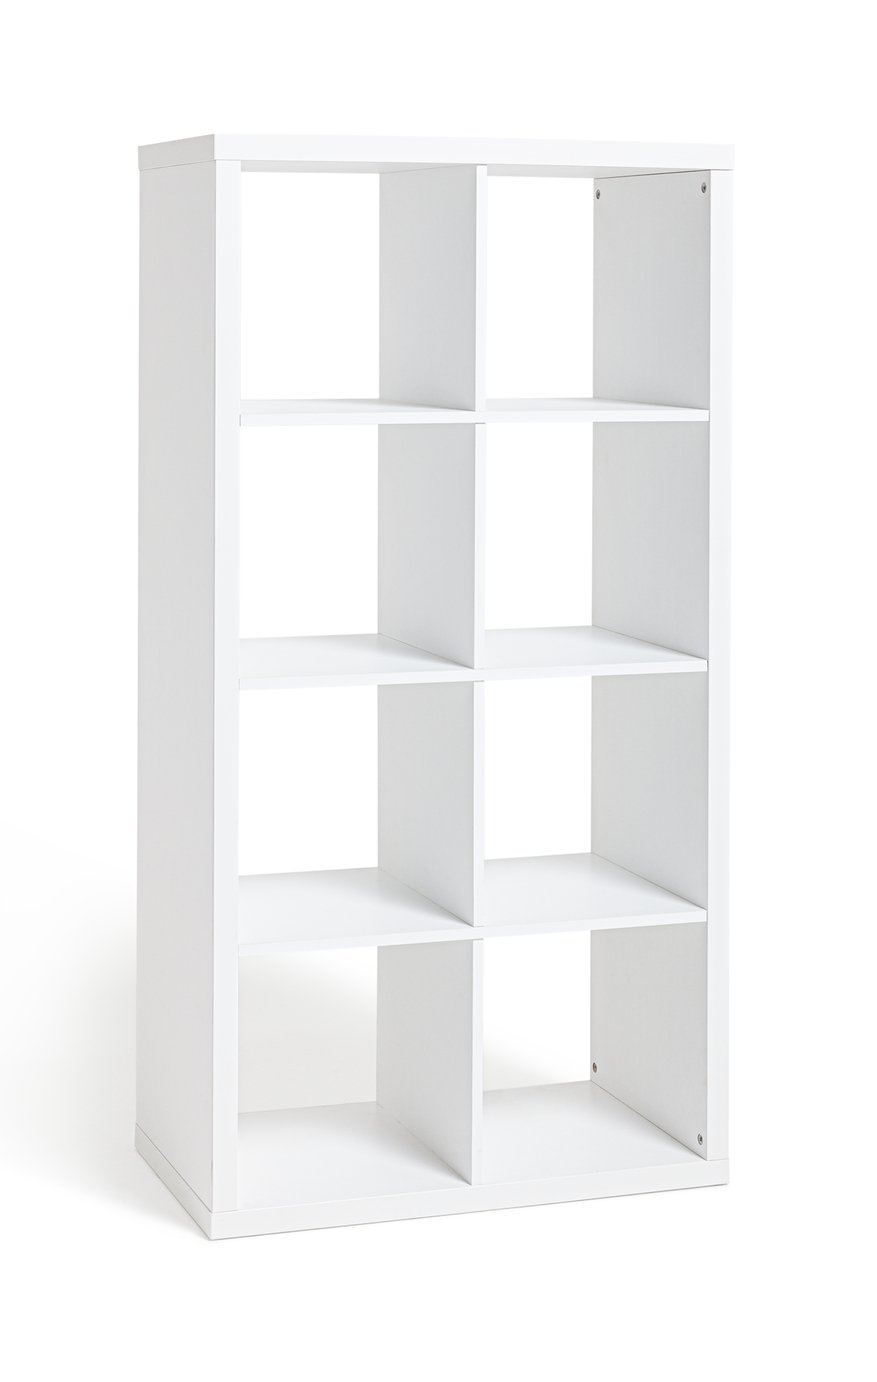 Hygena Squares Plus 8 Cube Storage Unit - White